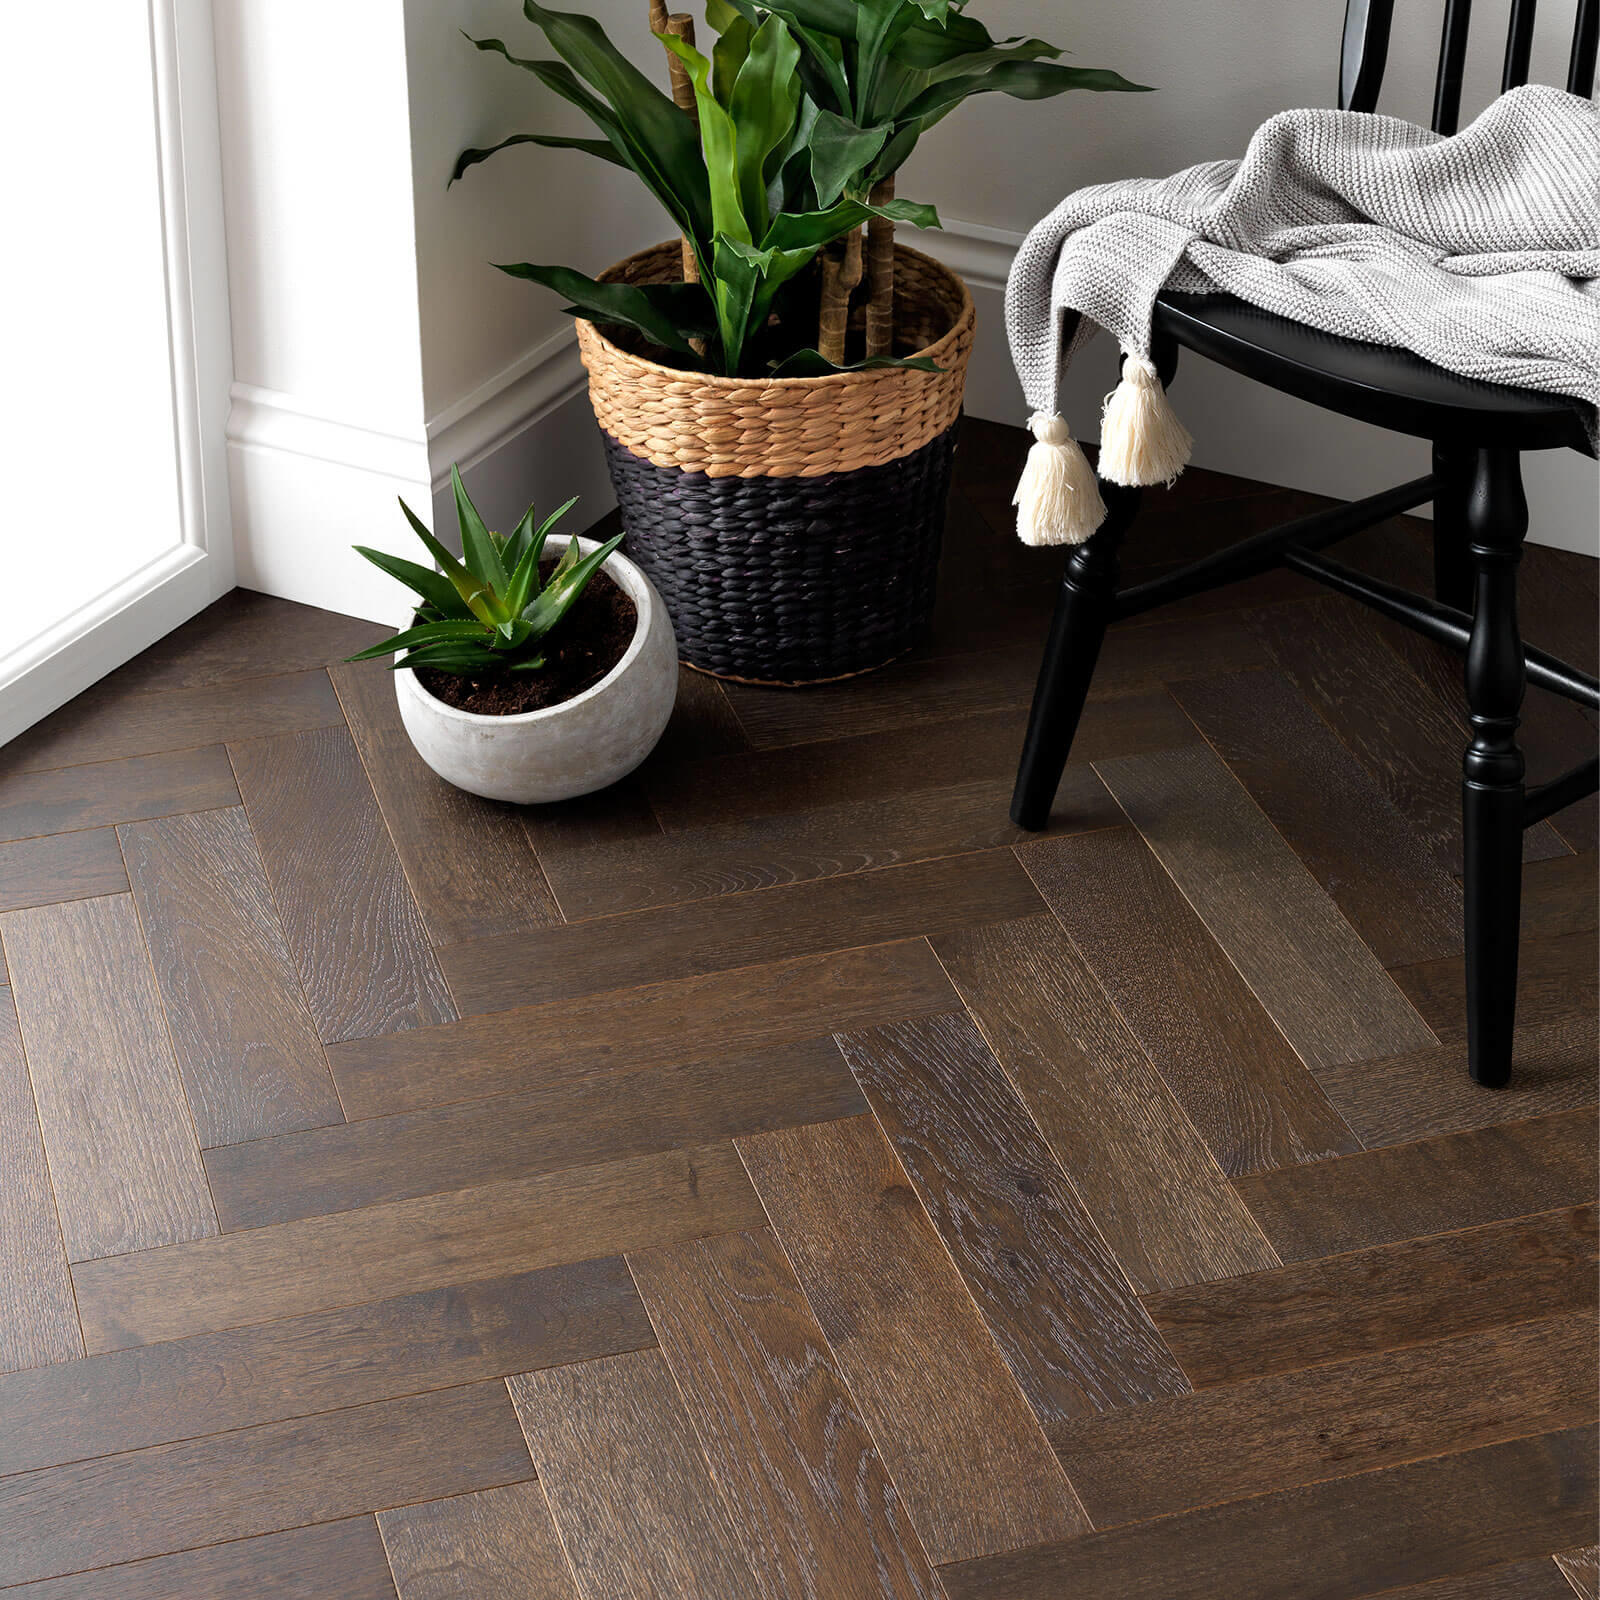 Woodpecker Goodrich Herringbone Espresso Oak Brushed & Matt Lacquered Engineered Wood Flooring 32-GCW-001